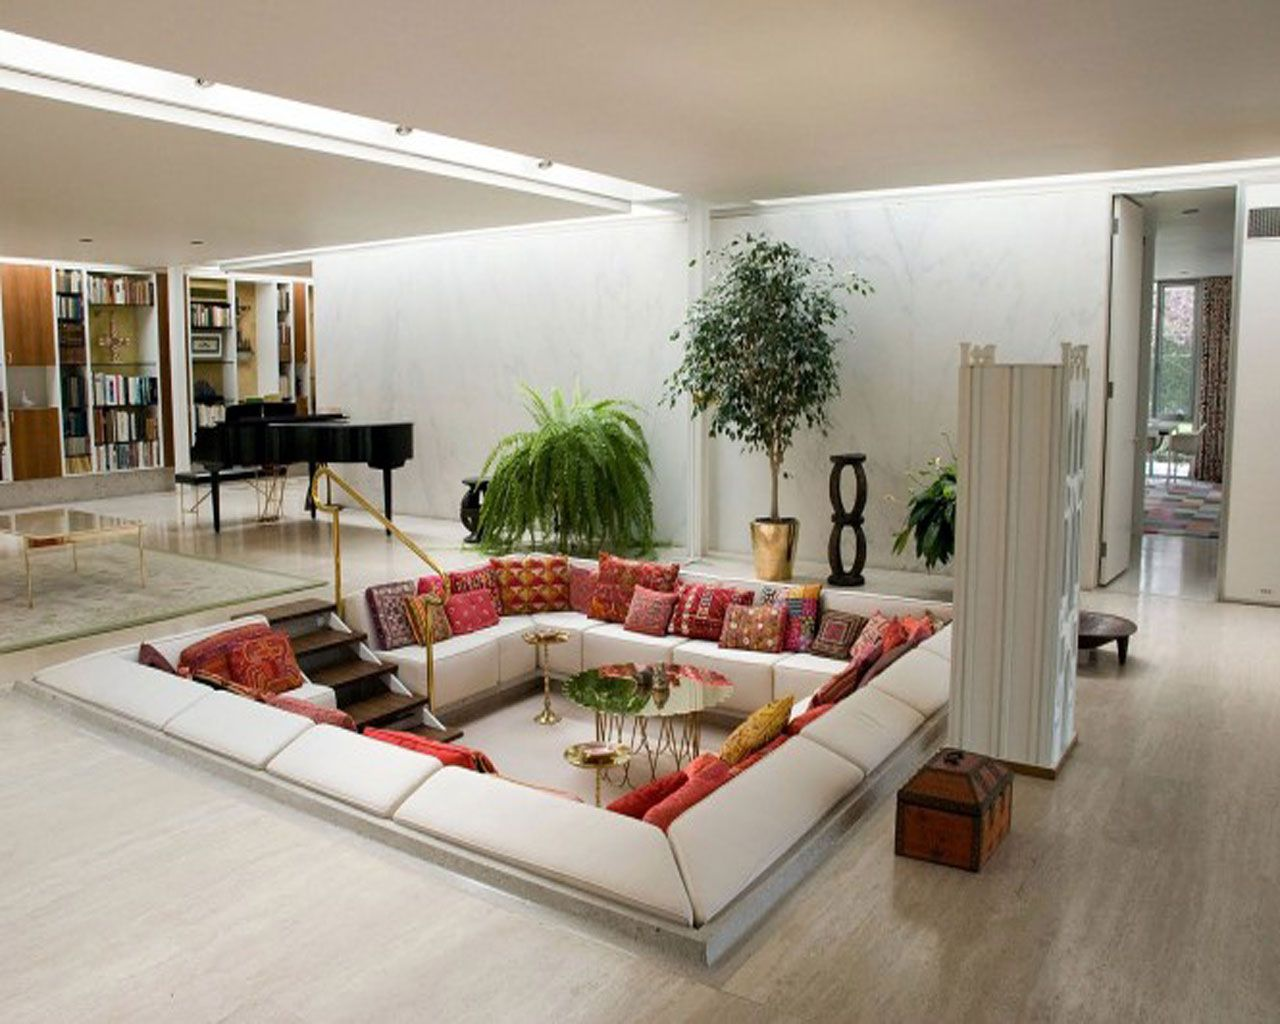 Designs Of Living Room Fascinating Attractive Living Room Design Ideas For Basement With Unique Design Decoration